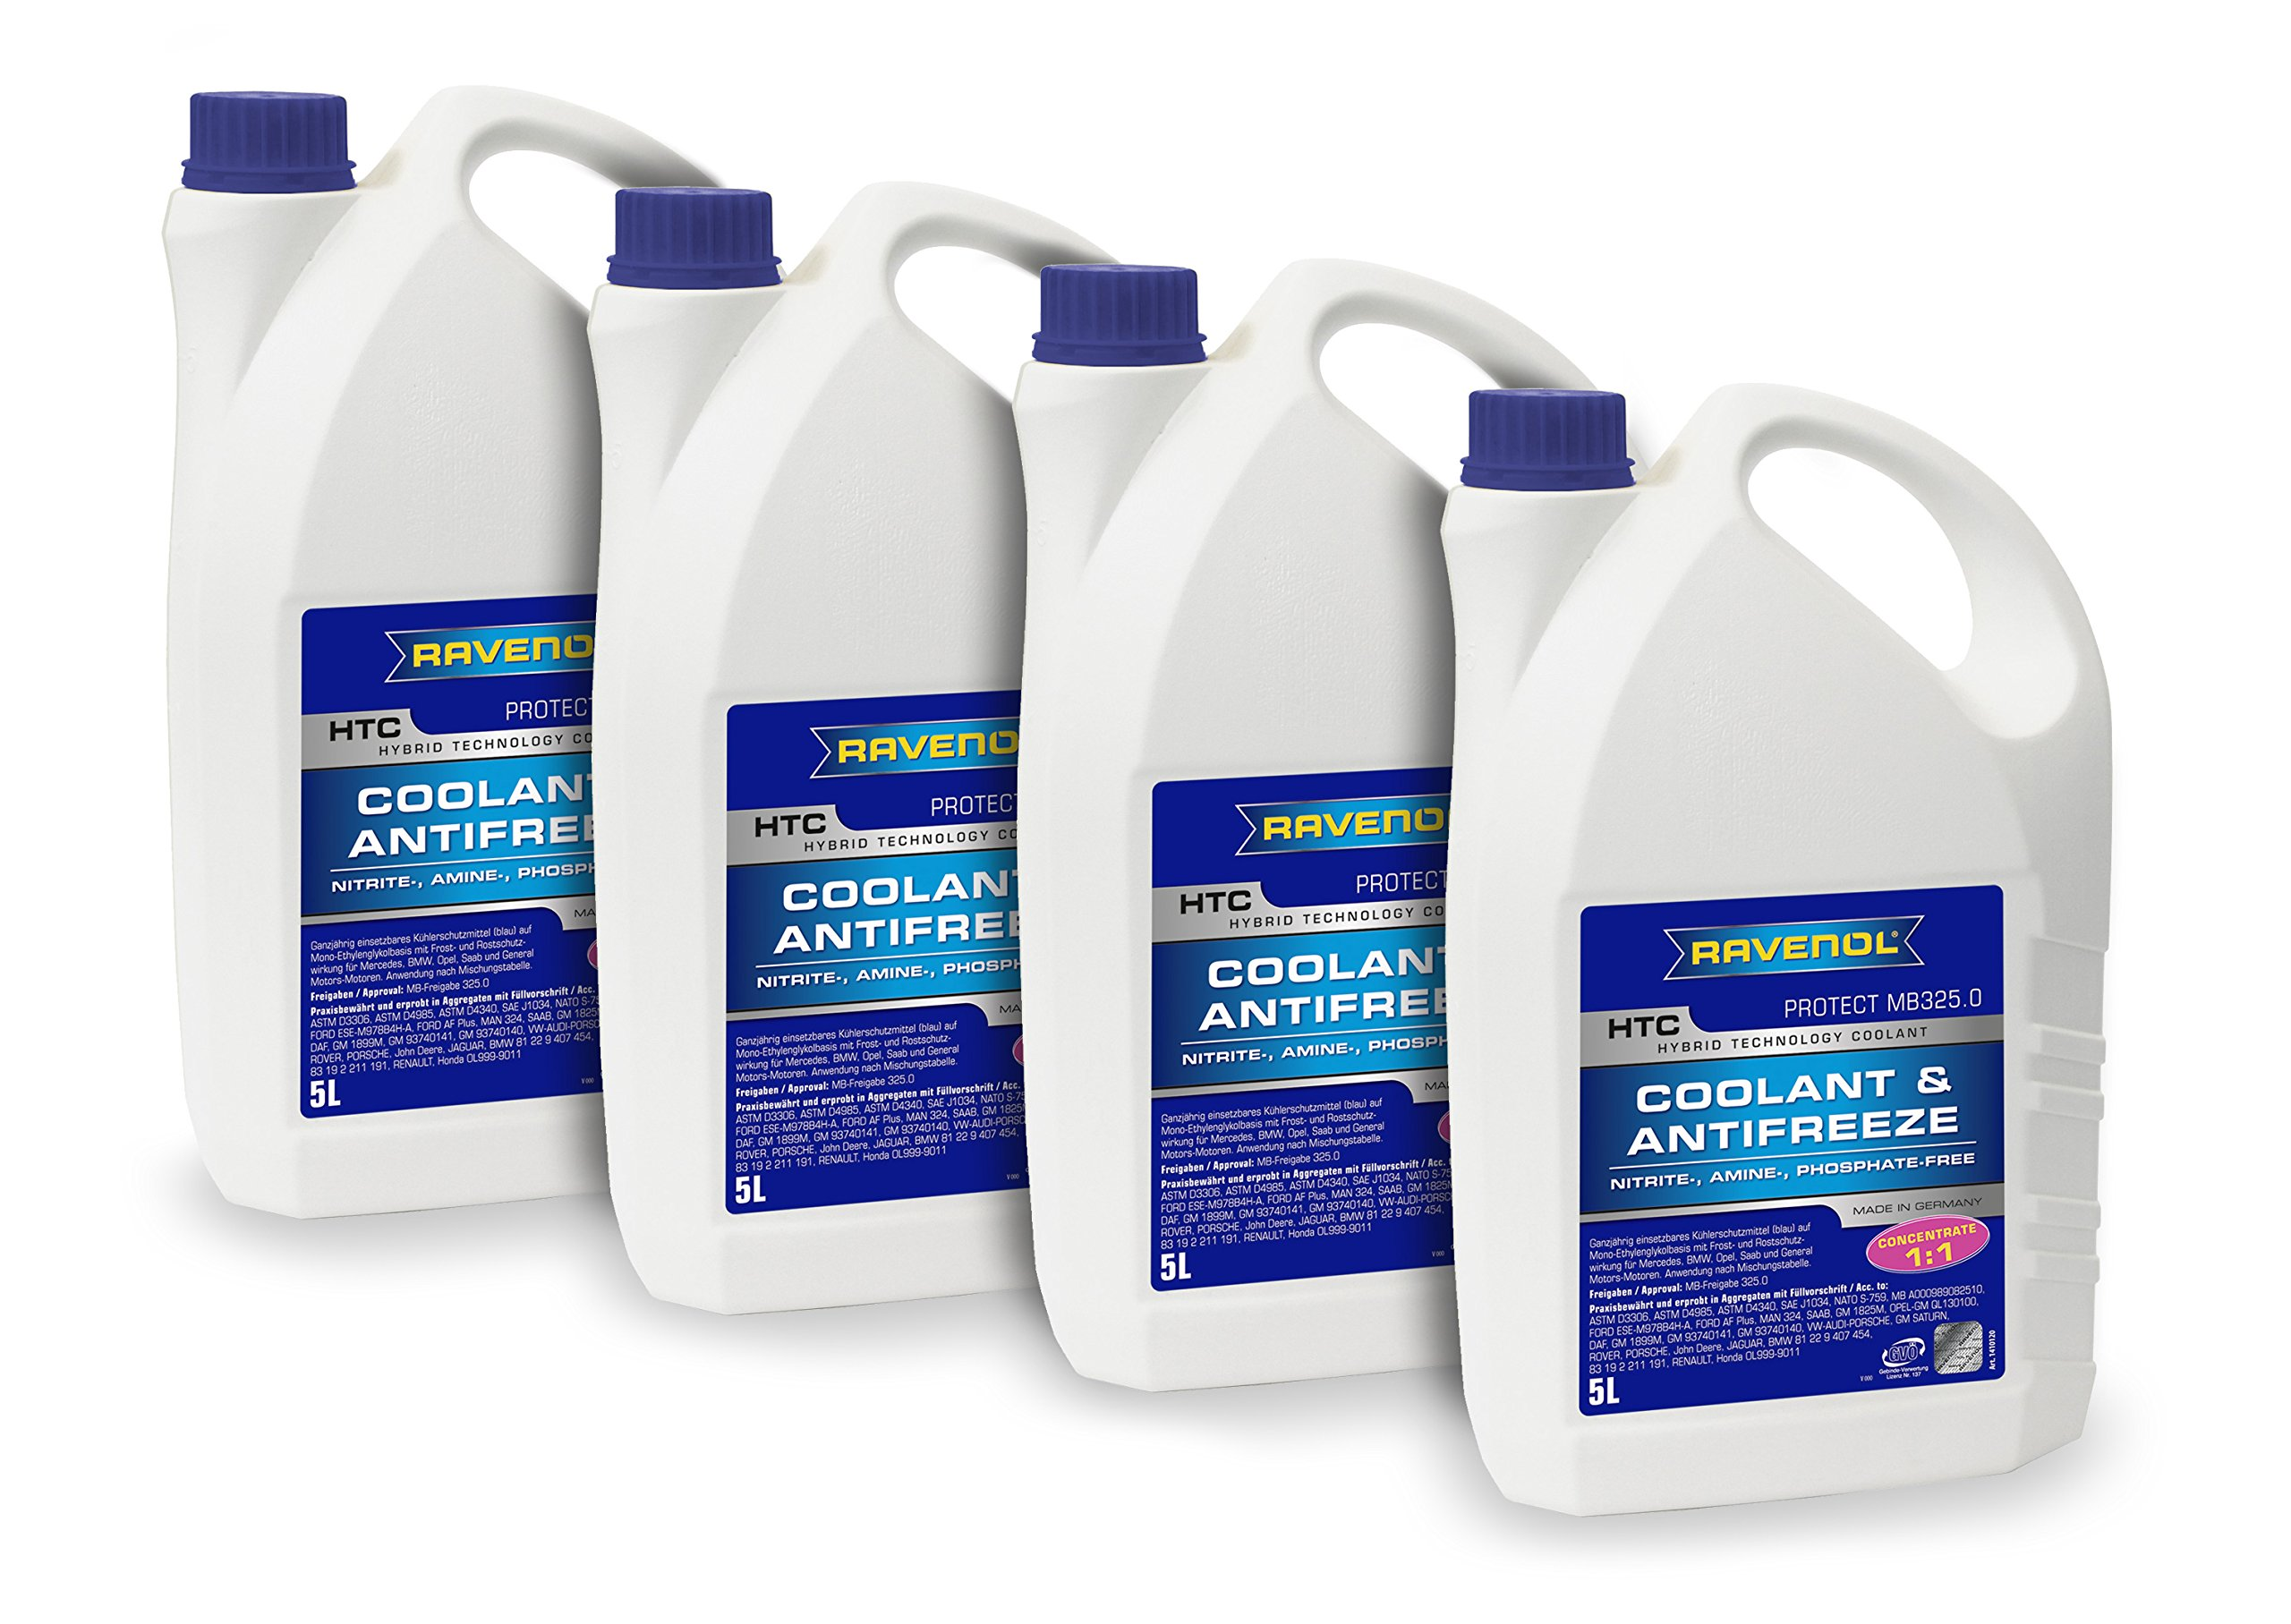 RAVENOL J4D2023-04 Coolant Antifreeze - HTC Concentrate MB 325.0, VW TL 774-C (G11) (5L, Case of 4) by Ravenol